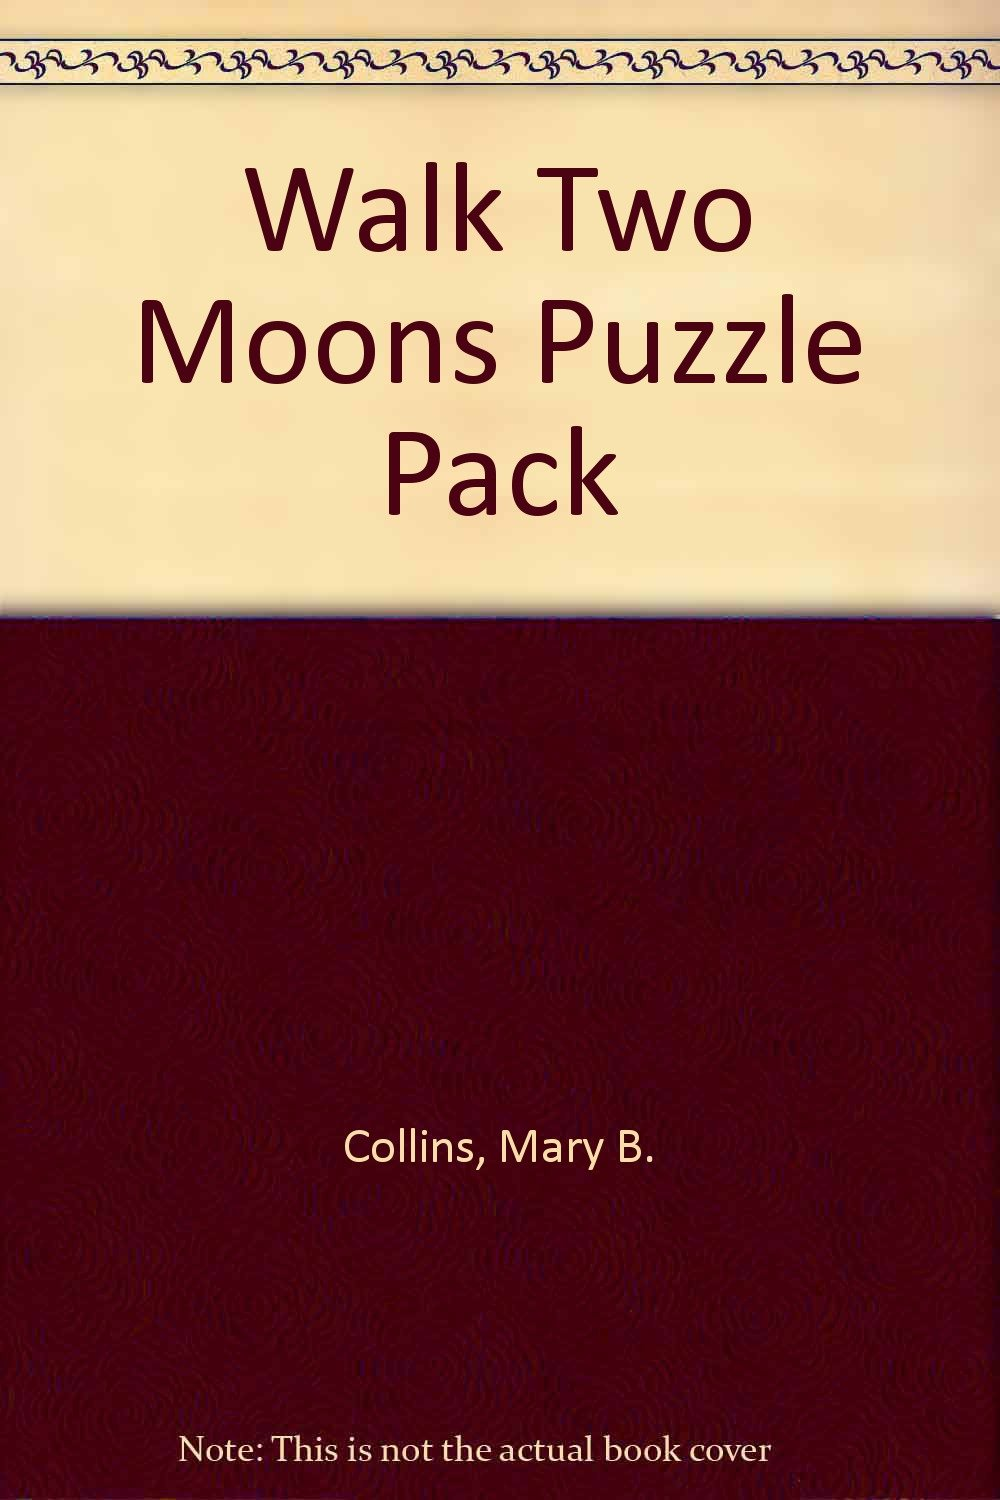 Worksheets Walk Two Moons Worksheets walk two moons puzzle pack teacher lesson plans activities crossword puzzles word searches games and worksheets paperback m